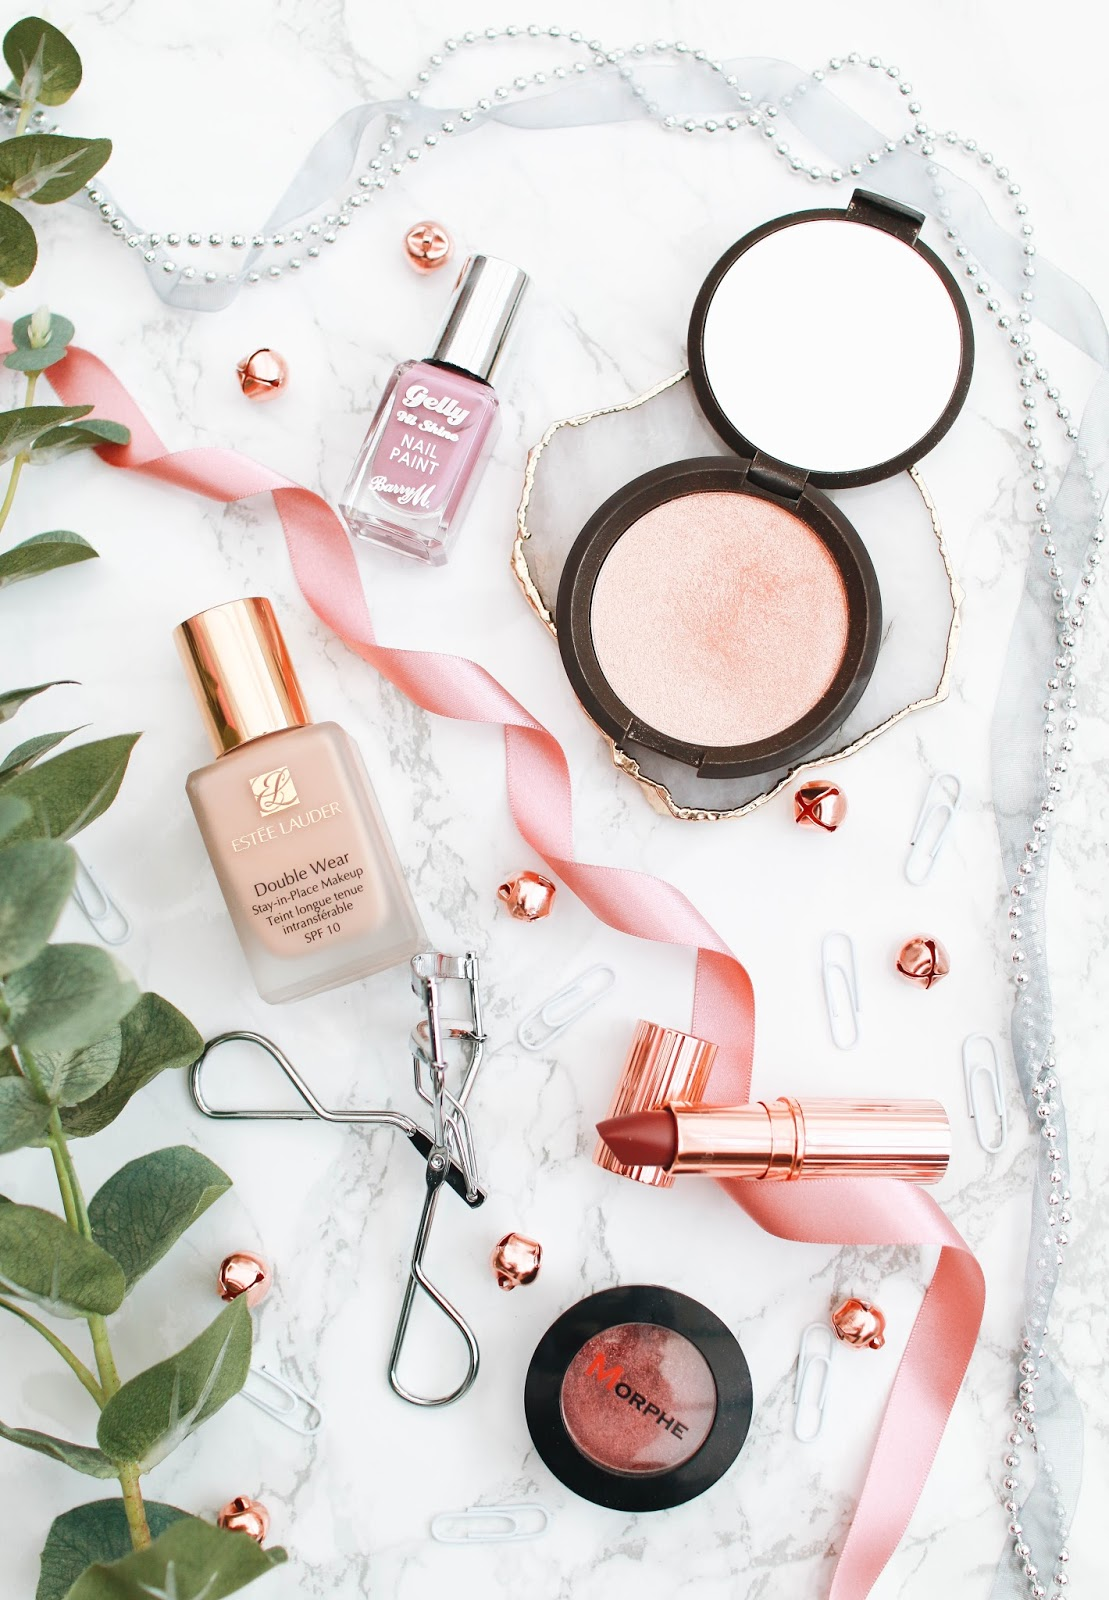 forever september, beauty blogger, lifestyle blogger, makeup, fashion, lifestyle, photography, flatlay, barry m, becca, charlotte tilbury, morphe, estee lauder